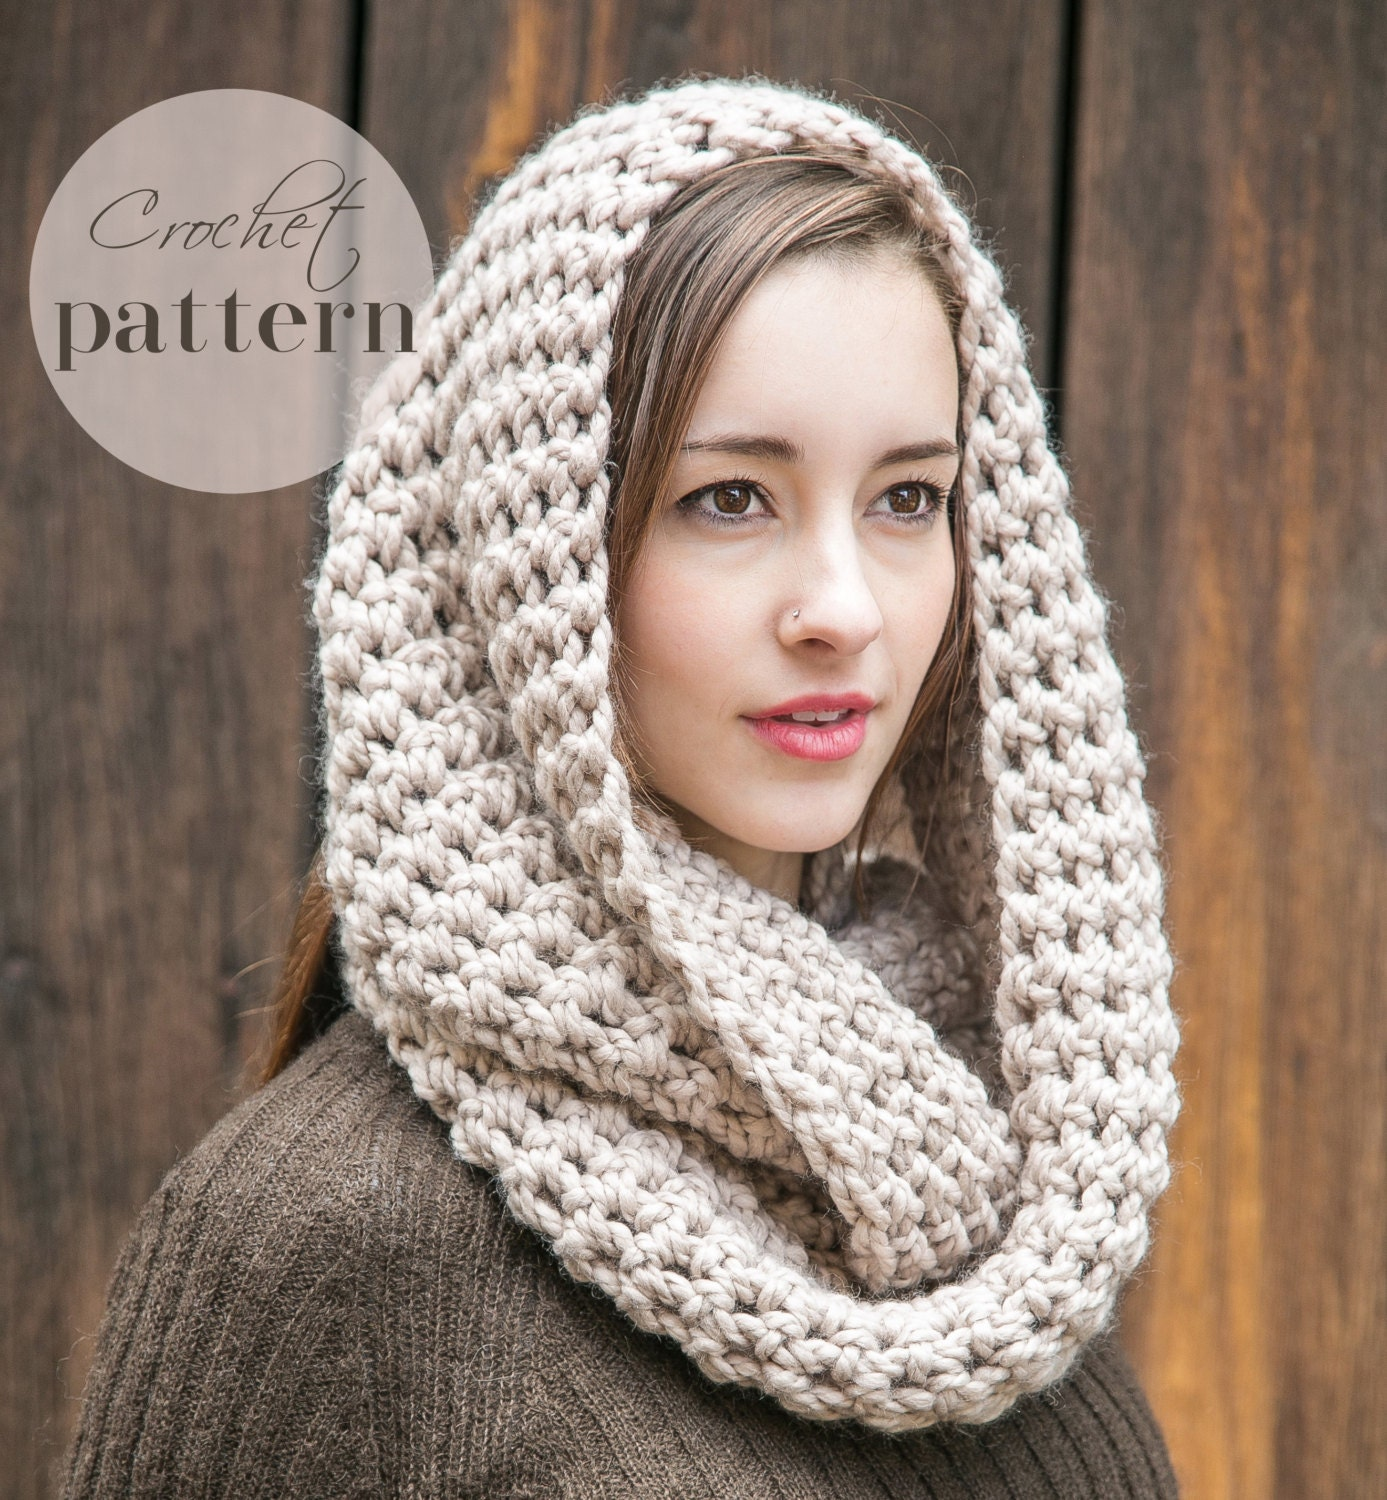 42 Fun and Cozy DIY Scarves Crafts to Make  |Beginning Crochet Scarf Pattern